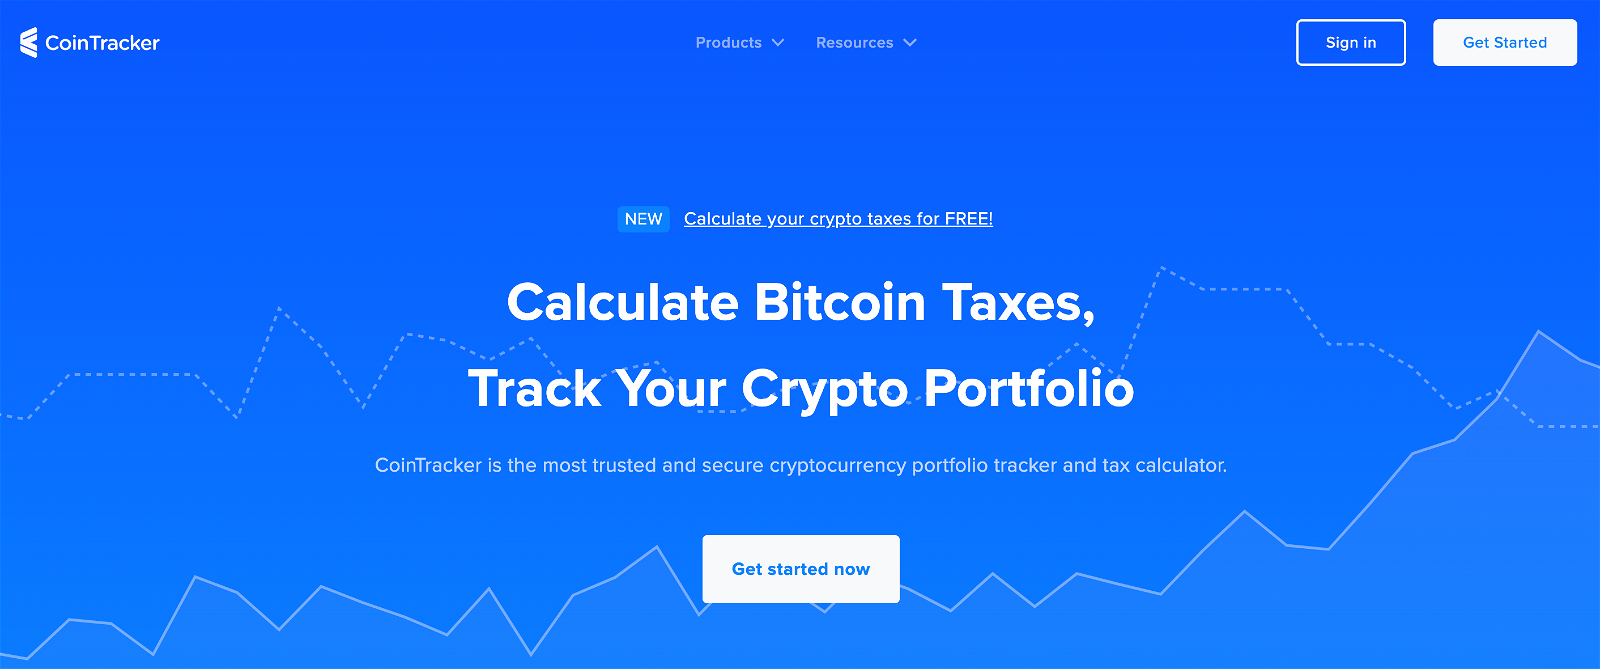 1631493024_59_7-Best-Crypto-Tax-Software-to-Calculate-Taxes-on-Crypto